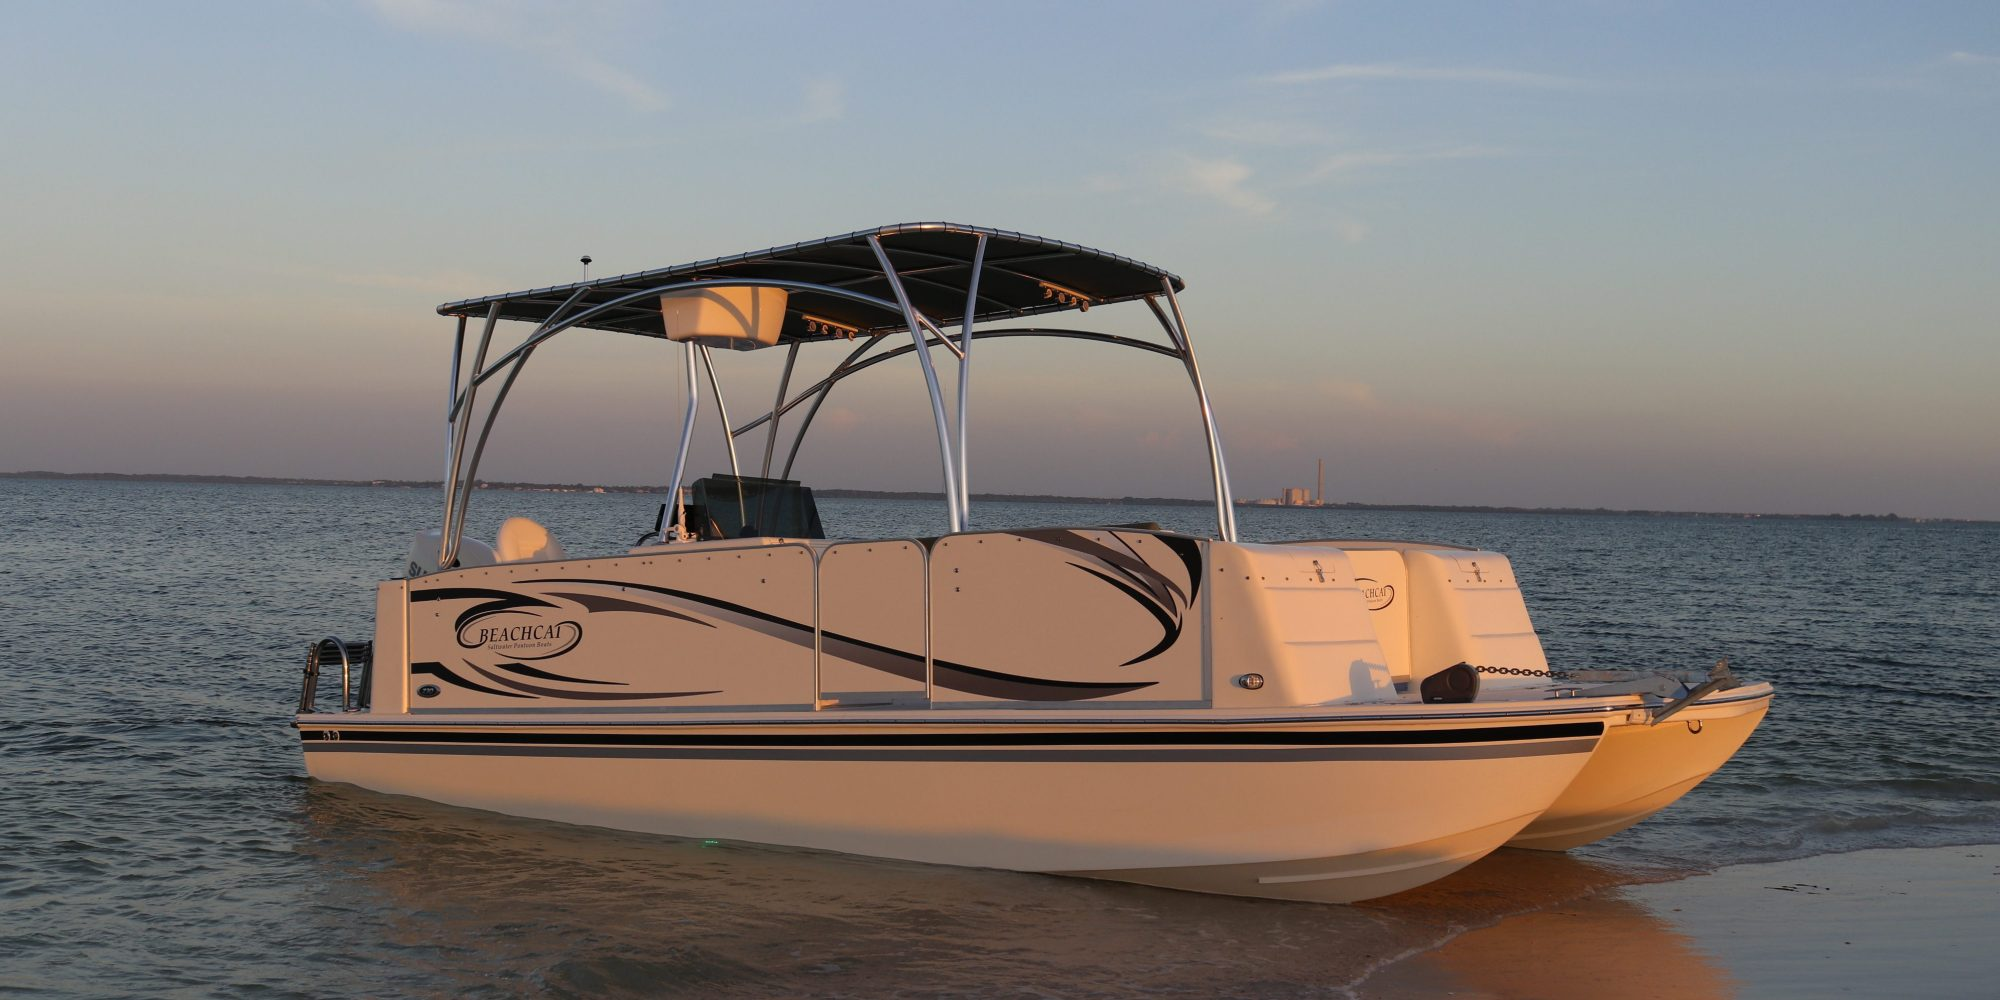 hight resolution of the beachcat 23 sport fish is the perfect pontoons for the avid angler comes equip with 2 32 gallon live well in deck insulated fish box